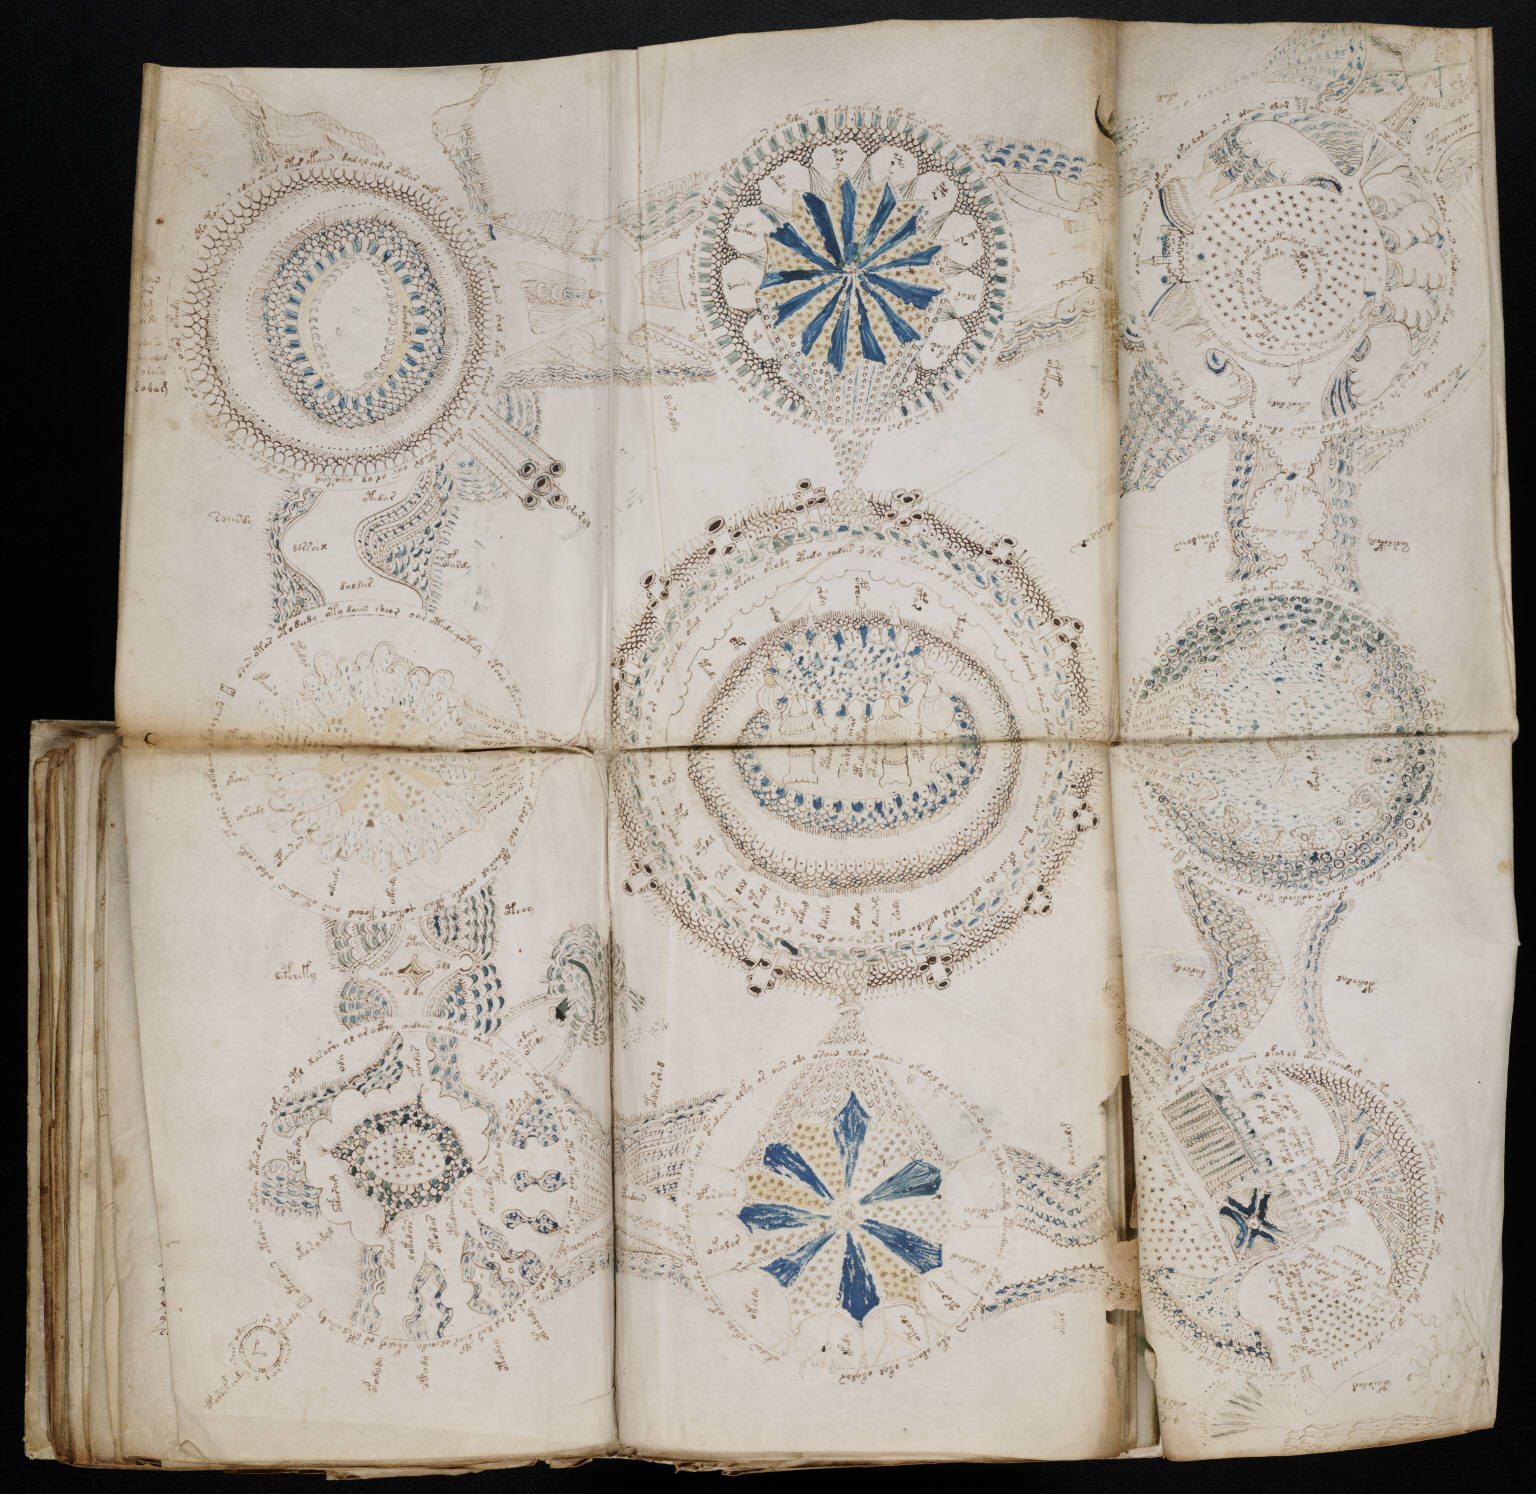 https://upload.wikimedia.org/wikipedia/commons/6/6a/Voynich_Manuscript_(158).jpg